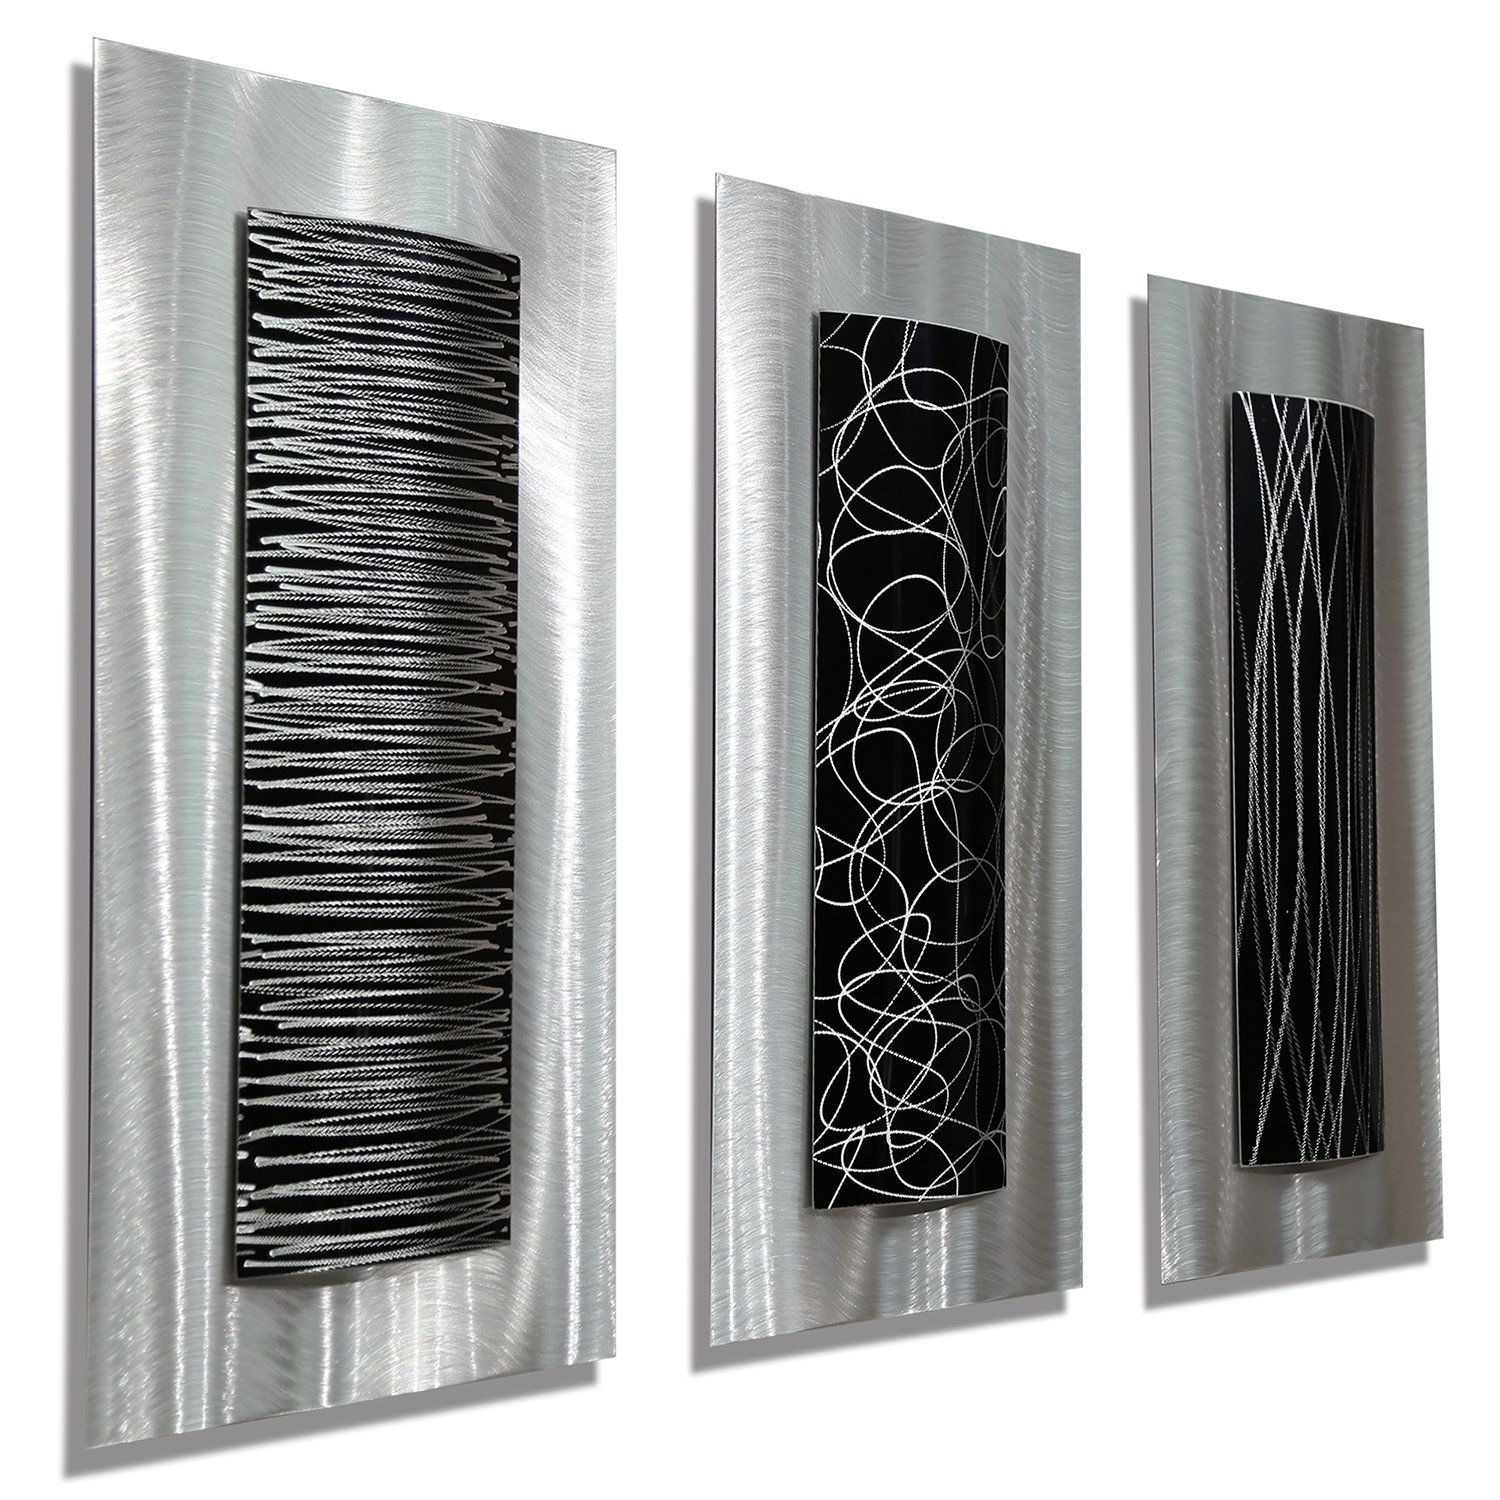 Contemporary Black & Silver Abstract Metal Wall Art Accent Modern Home Decor, Set of Three - Trifecta by Jon Allen